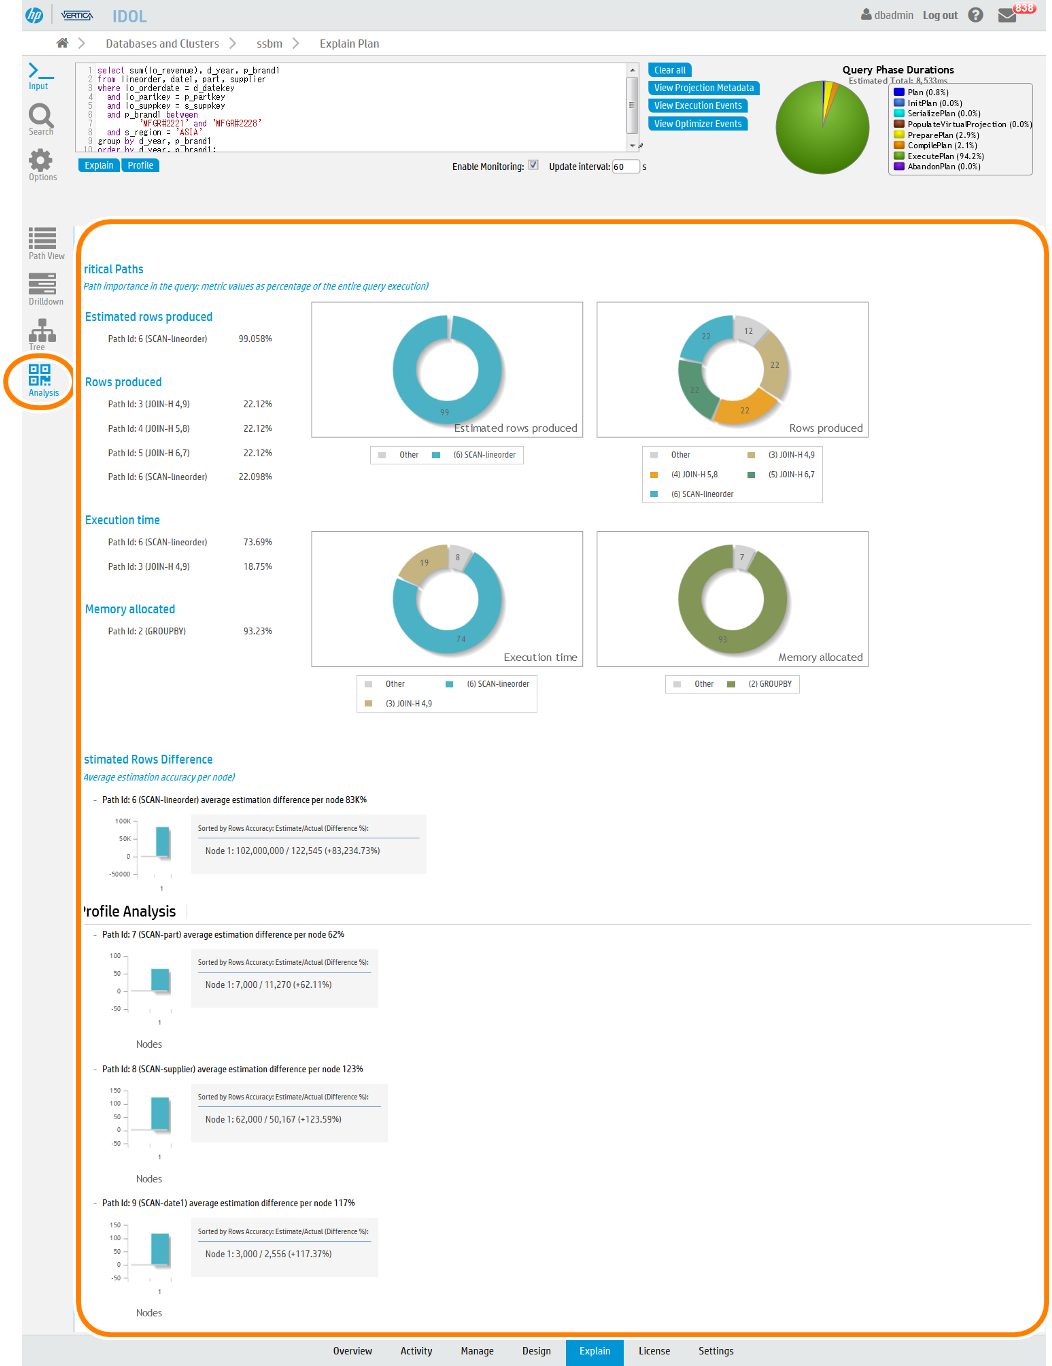 Vertica Management Console - Explain Plan_2015-11-16_13-52-10